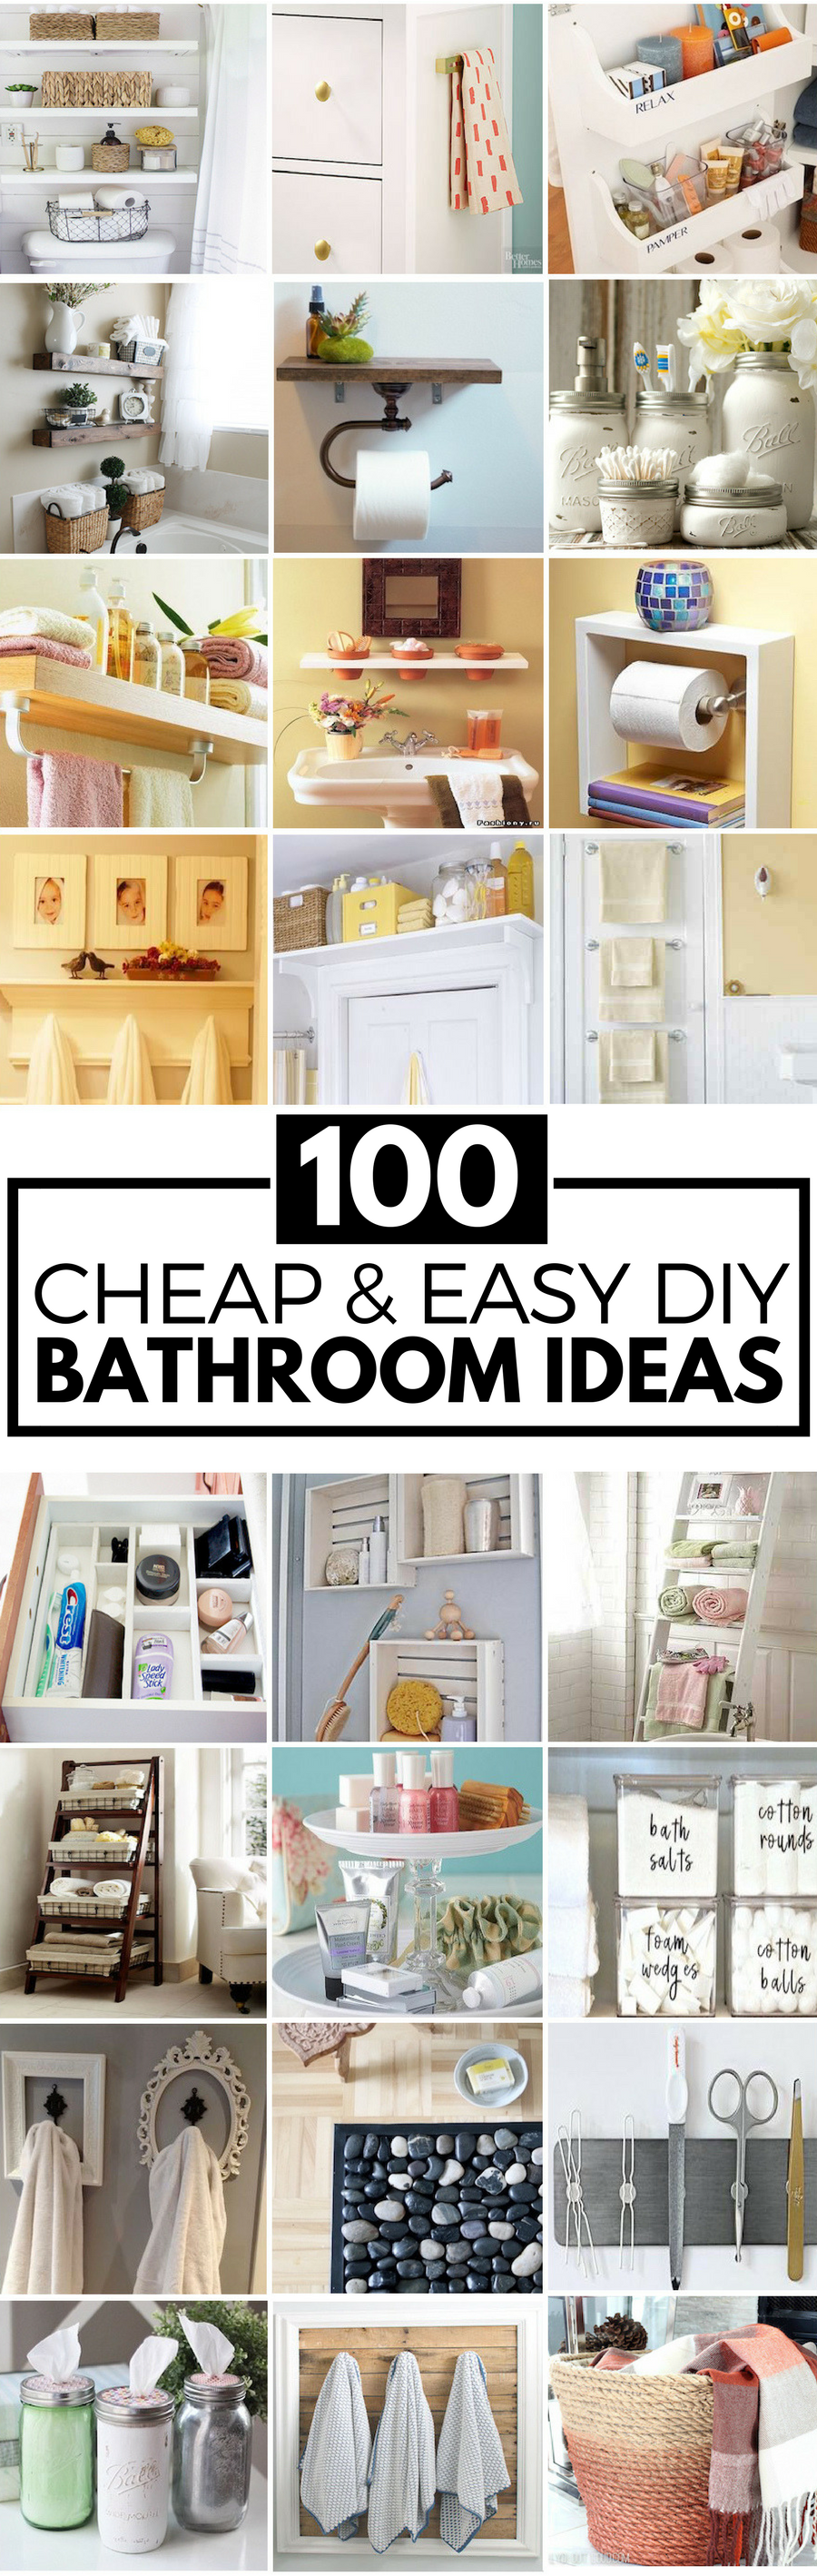 100 cheap and easy diy bathroom ideas prudent penny pincher - Cheap bathroom ideas for small bathrooms ...